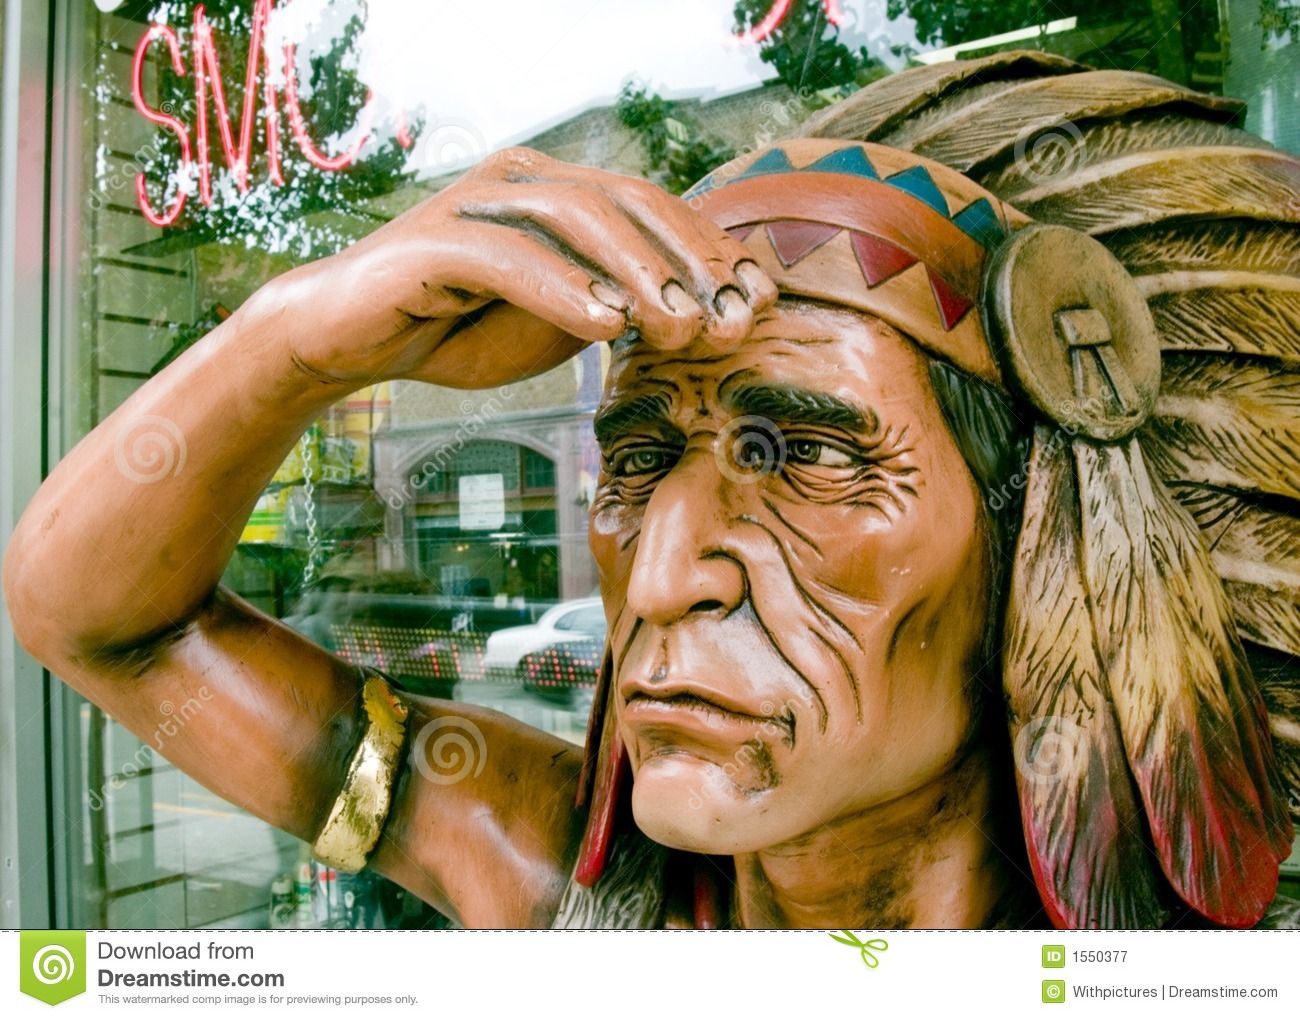 Indian Smoke Shop >> Tobacco Shop Indian Stock Image Image Of Smoking Native